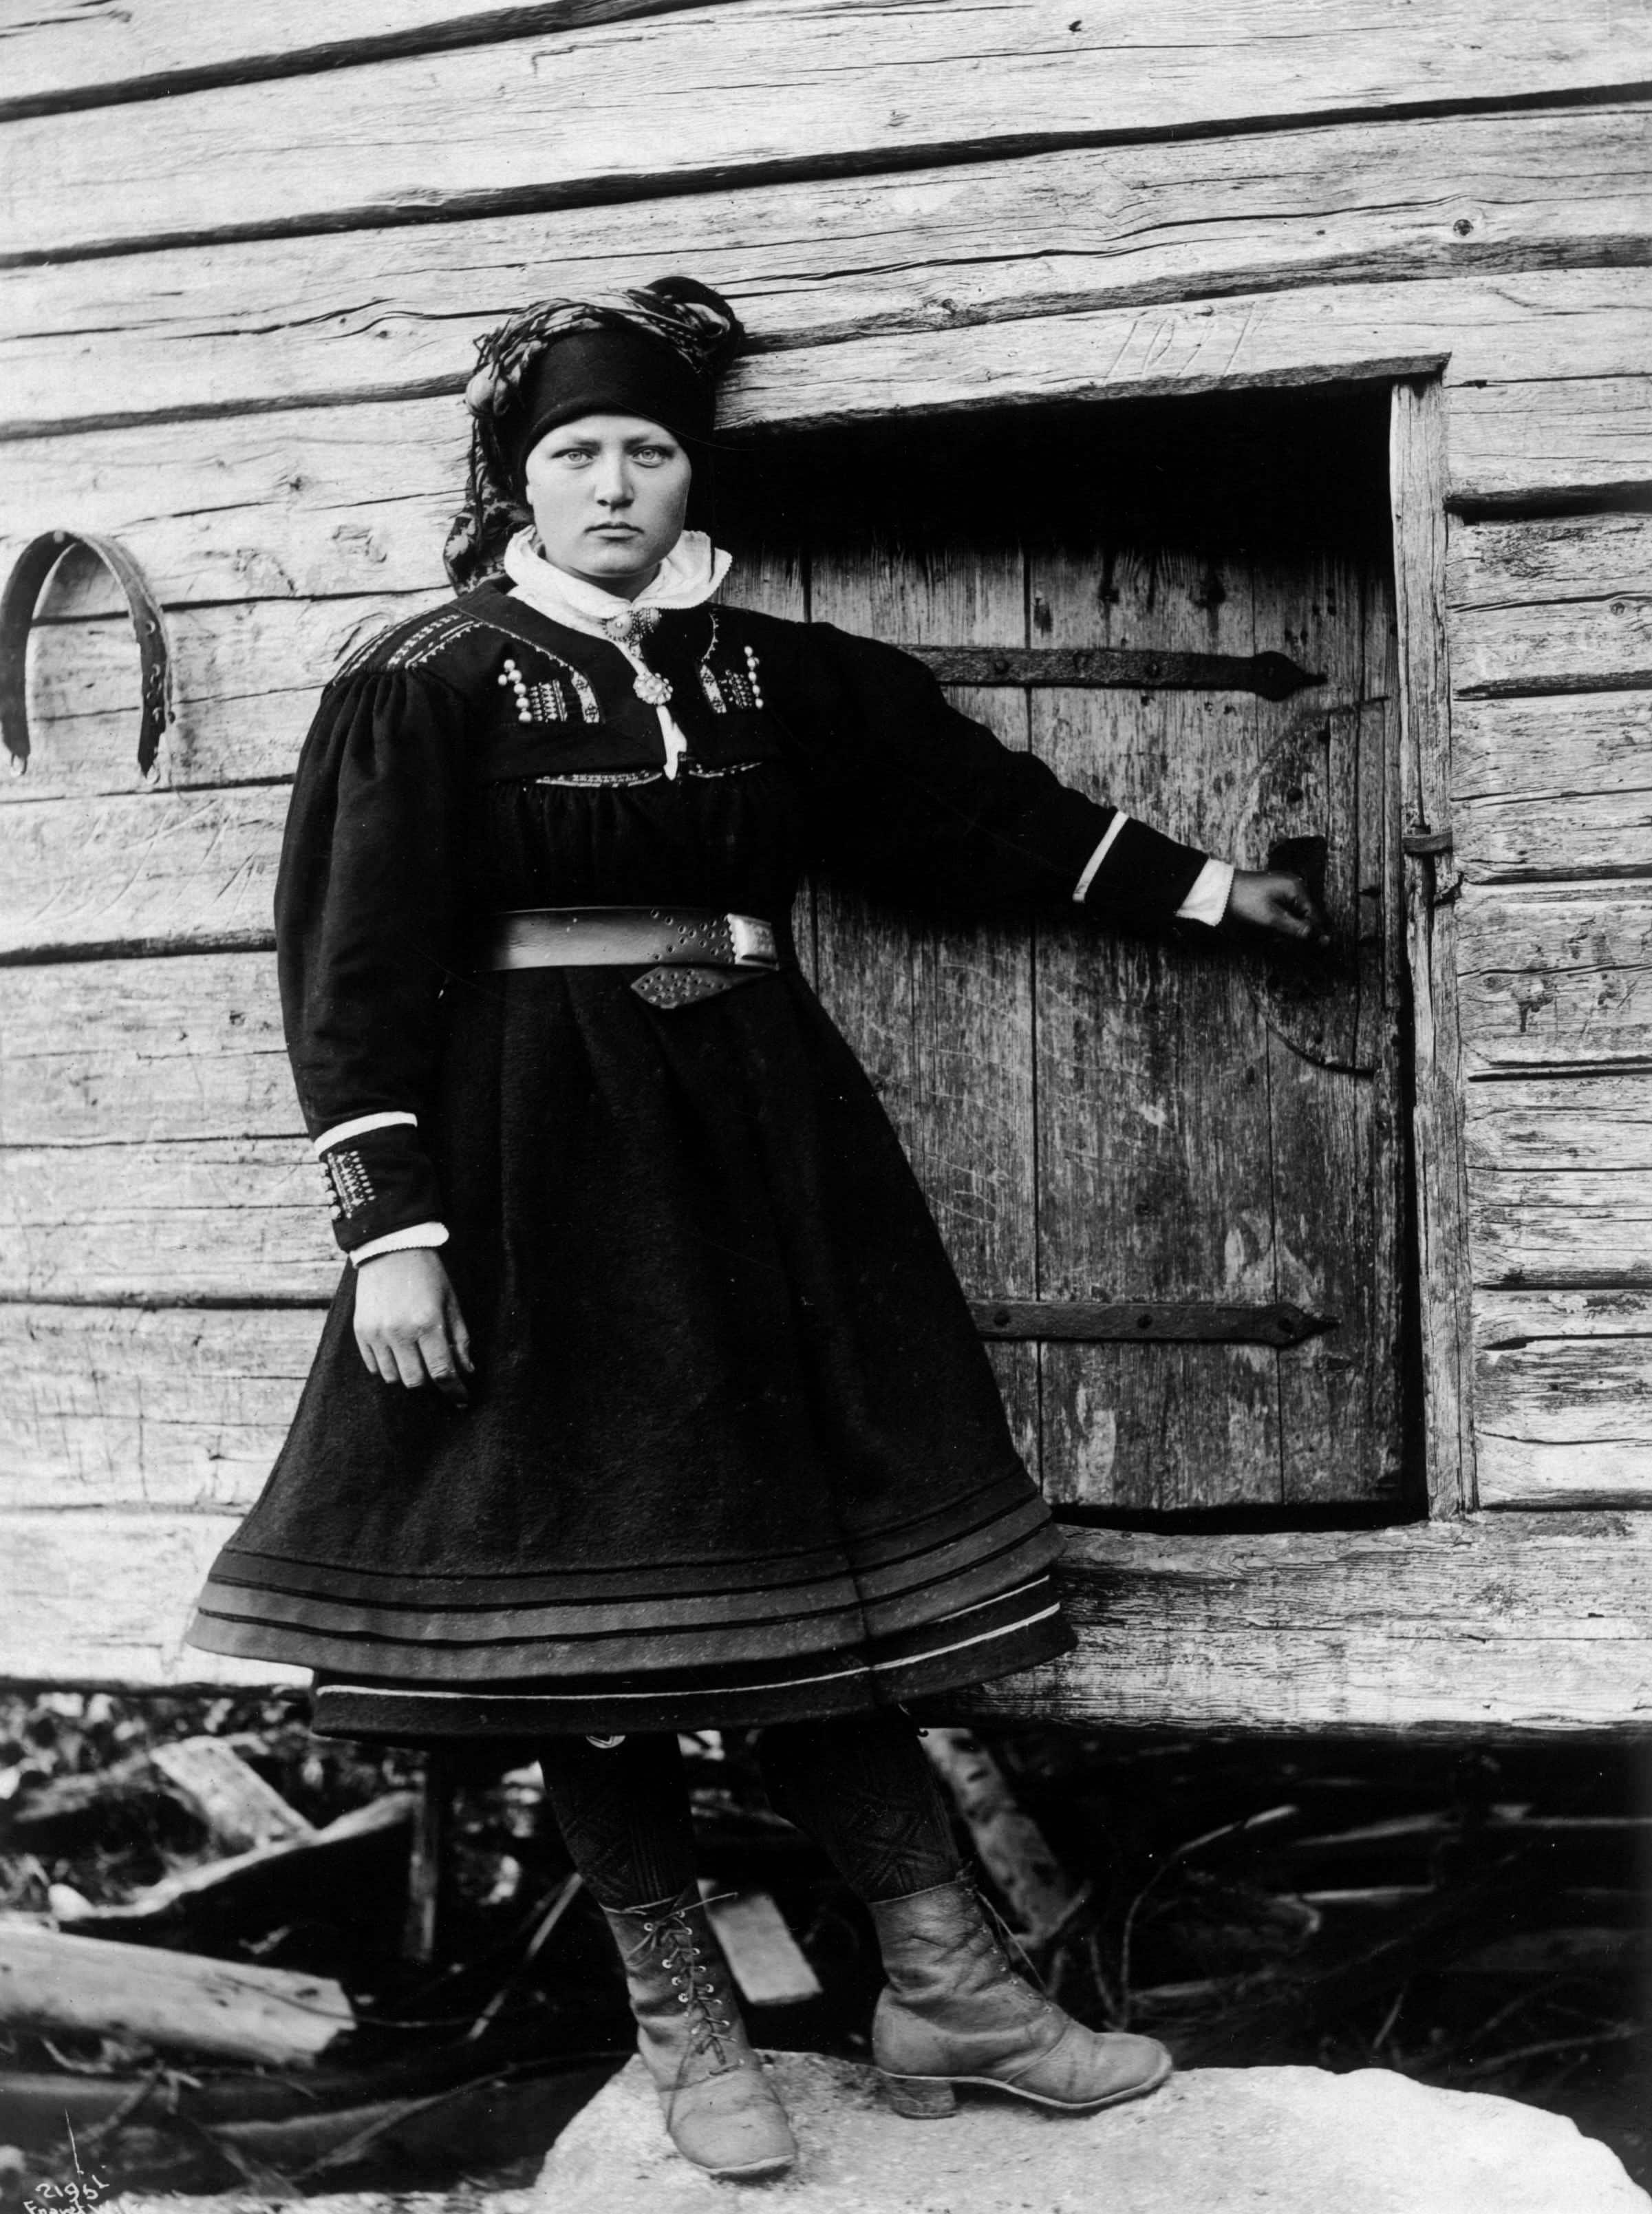 A young woman in her folk costume in 1888 -  Setesdal, Agder, Norway. | Photo: Norsk Folkemuseum cc pdm.